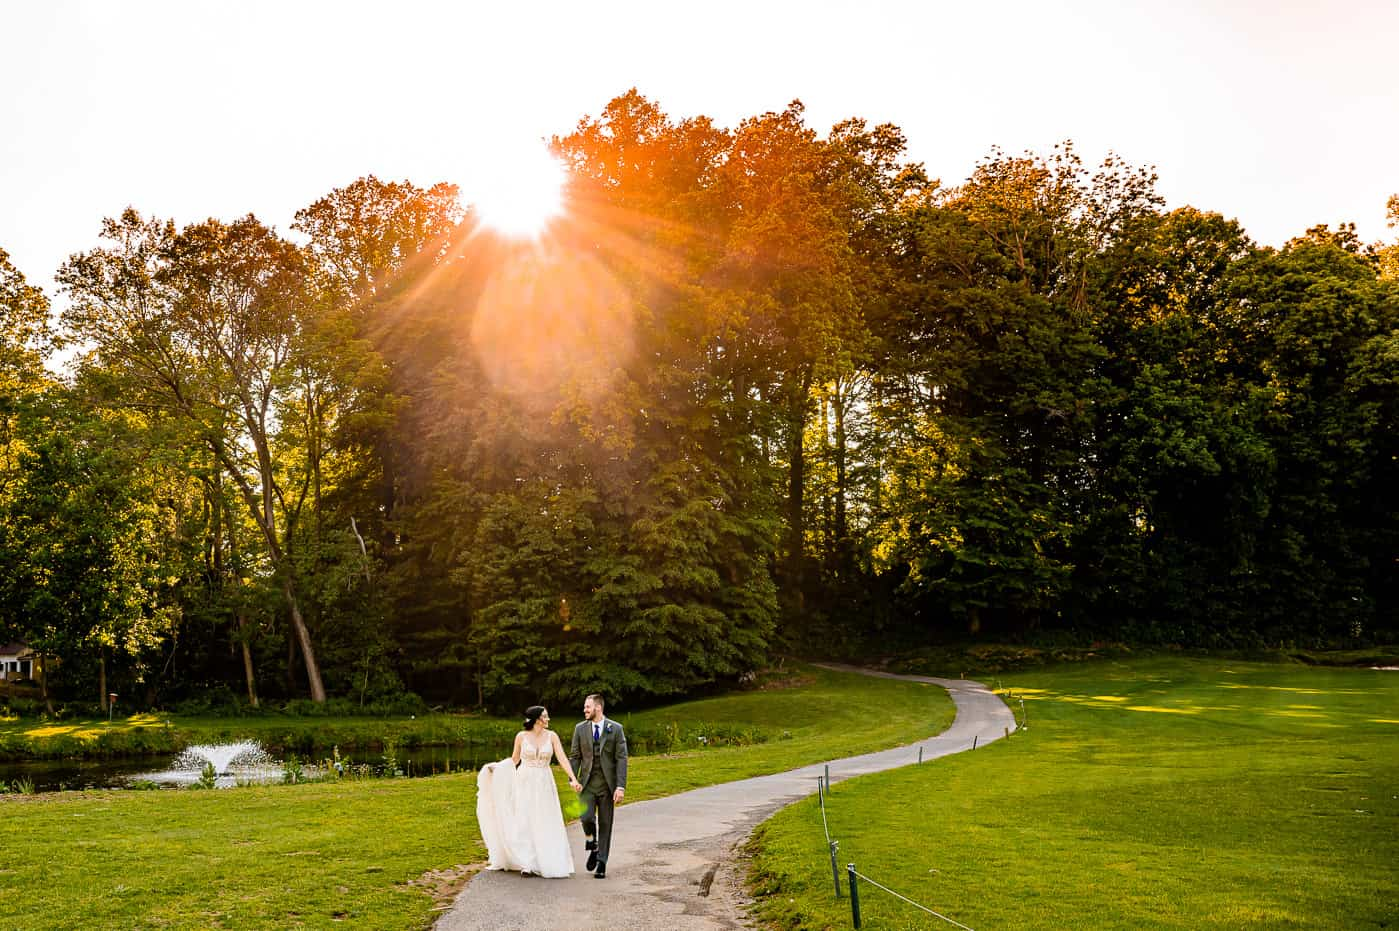 Bride and groom walking through Paxon hollow golf club at sunset